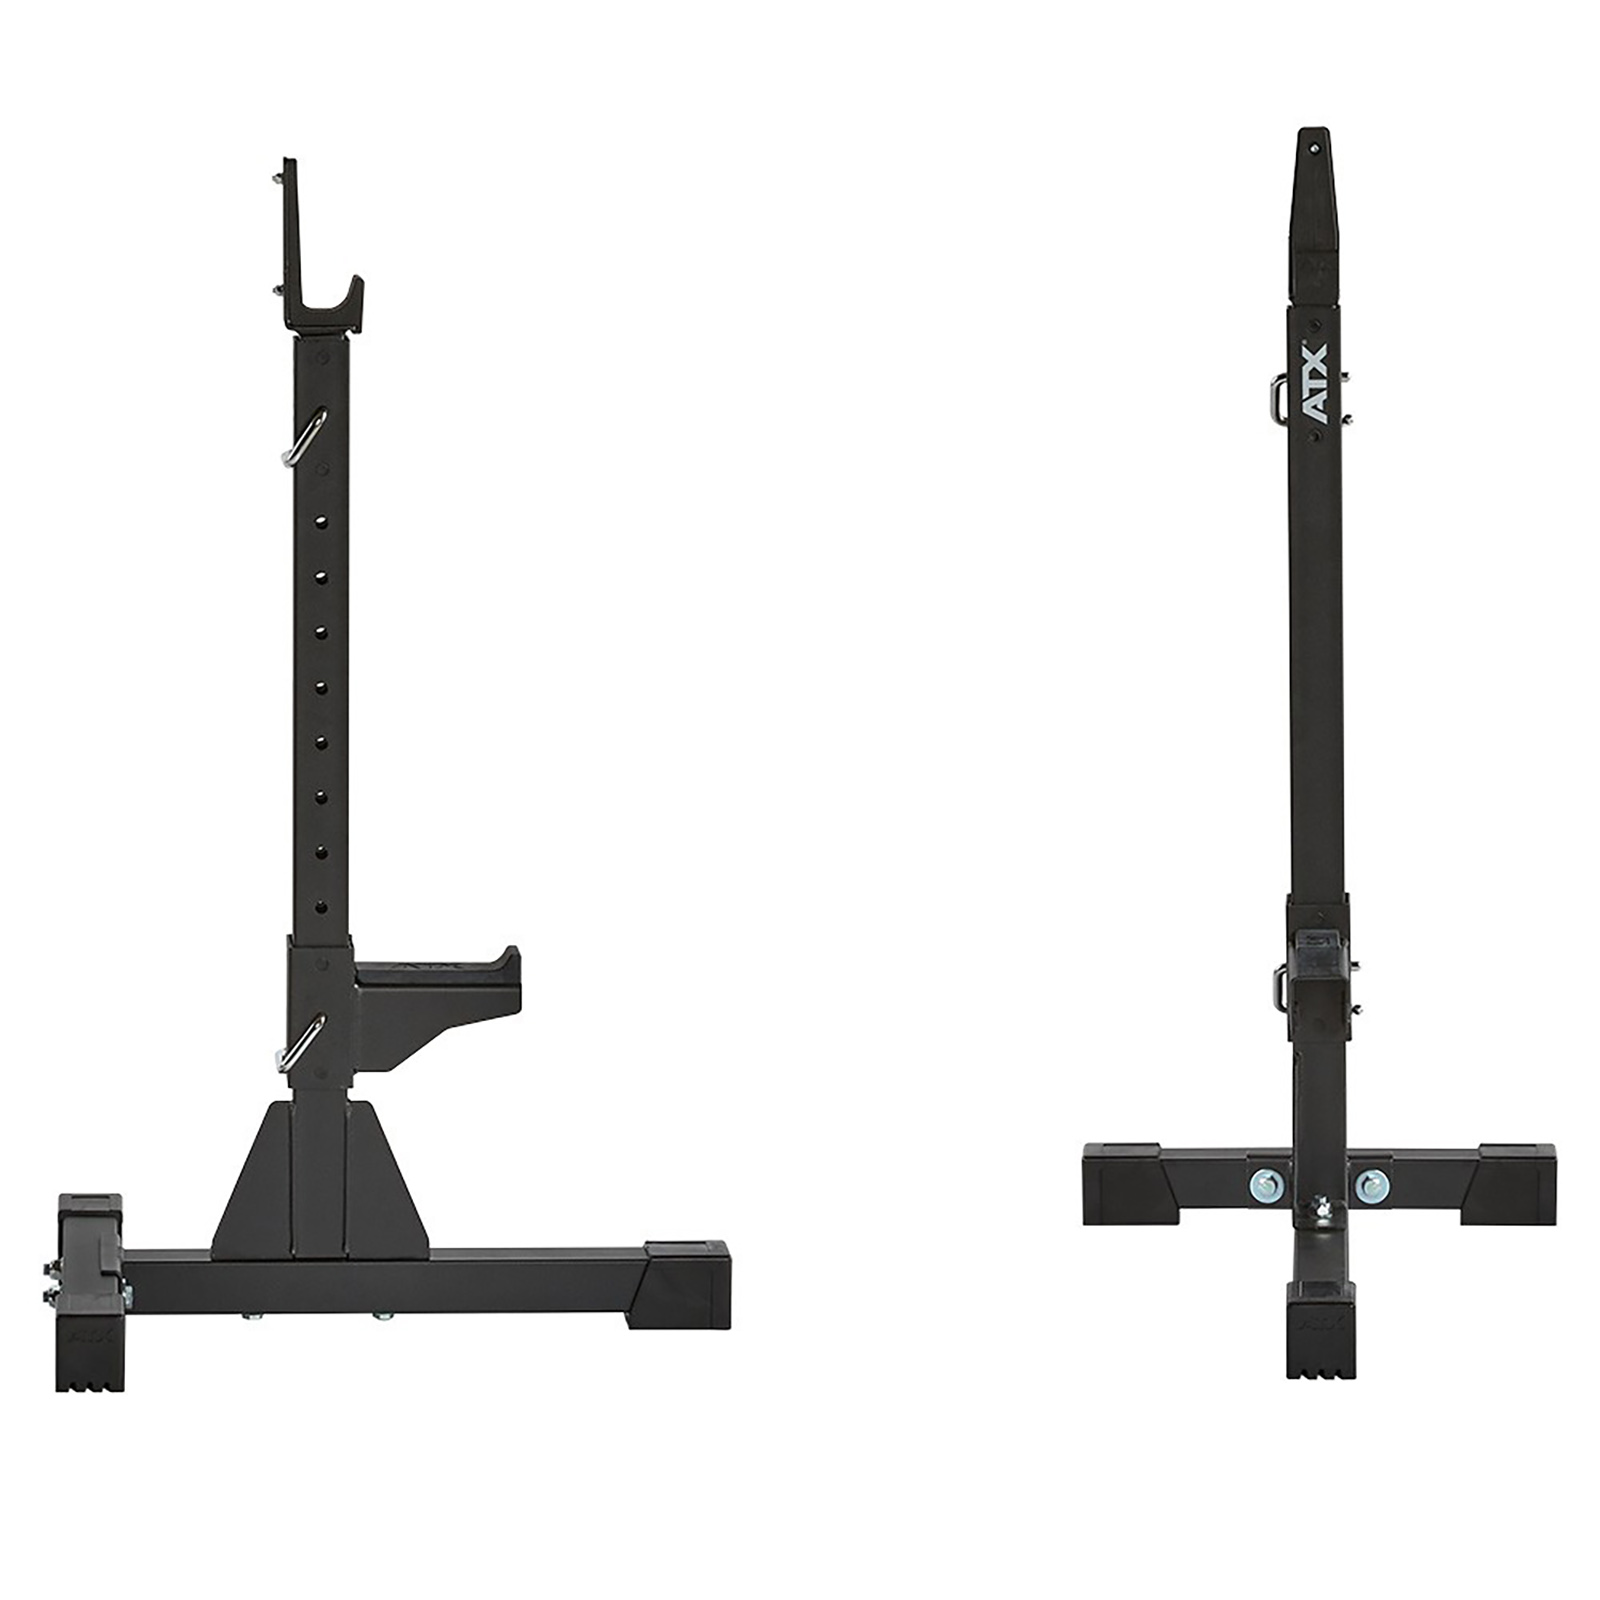 atx compact squat stands